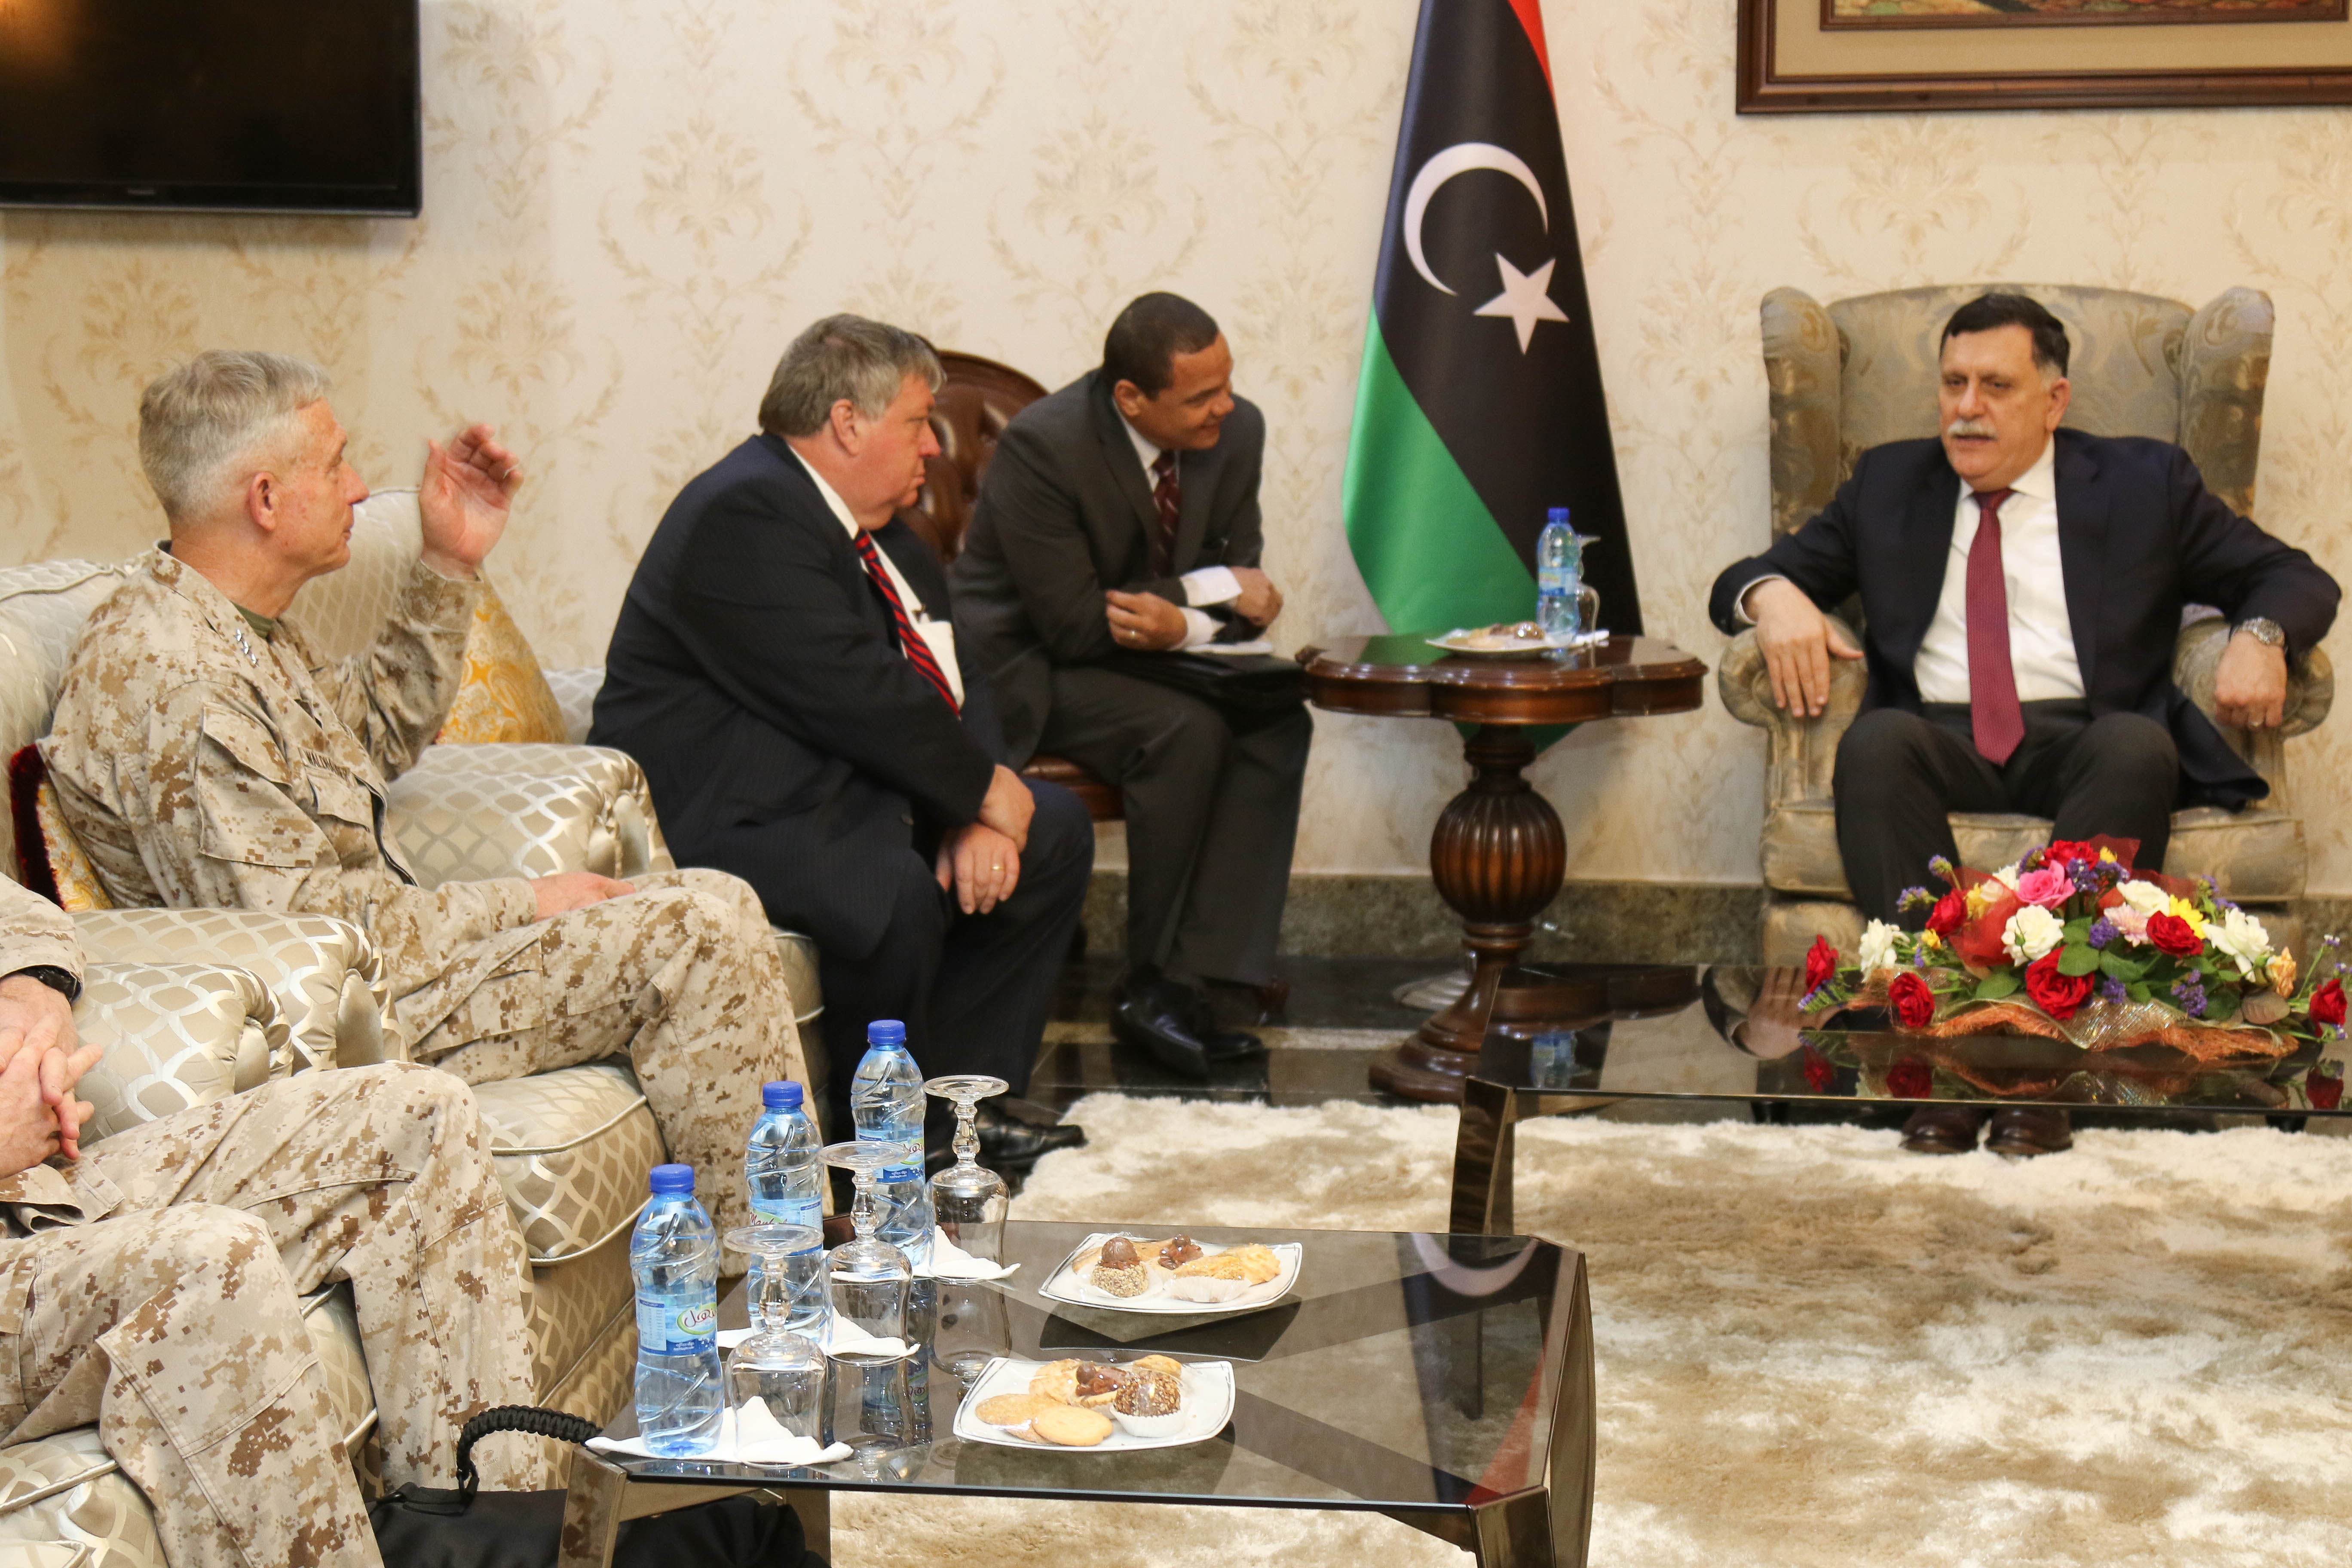 U.S. Marine Corps Gen. Thomas D. Waldhauser, Commander, U.S. Africa Command (USAFRICOM), and Amb. Peter Bodde, U.S. Ambassador to Libya, meets with Fayez al-Sarraj the Prime Minister of Libya's Unity Government, during a recent visit to Tripoli, Libya May 23, 2017. This marks the first time a a high ranking U.S. military official has been in Libya since 2014.